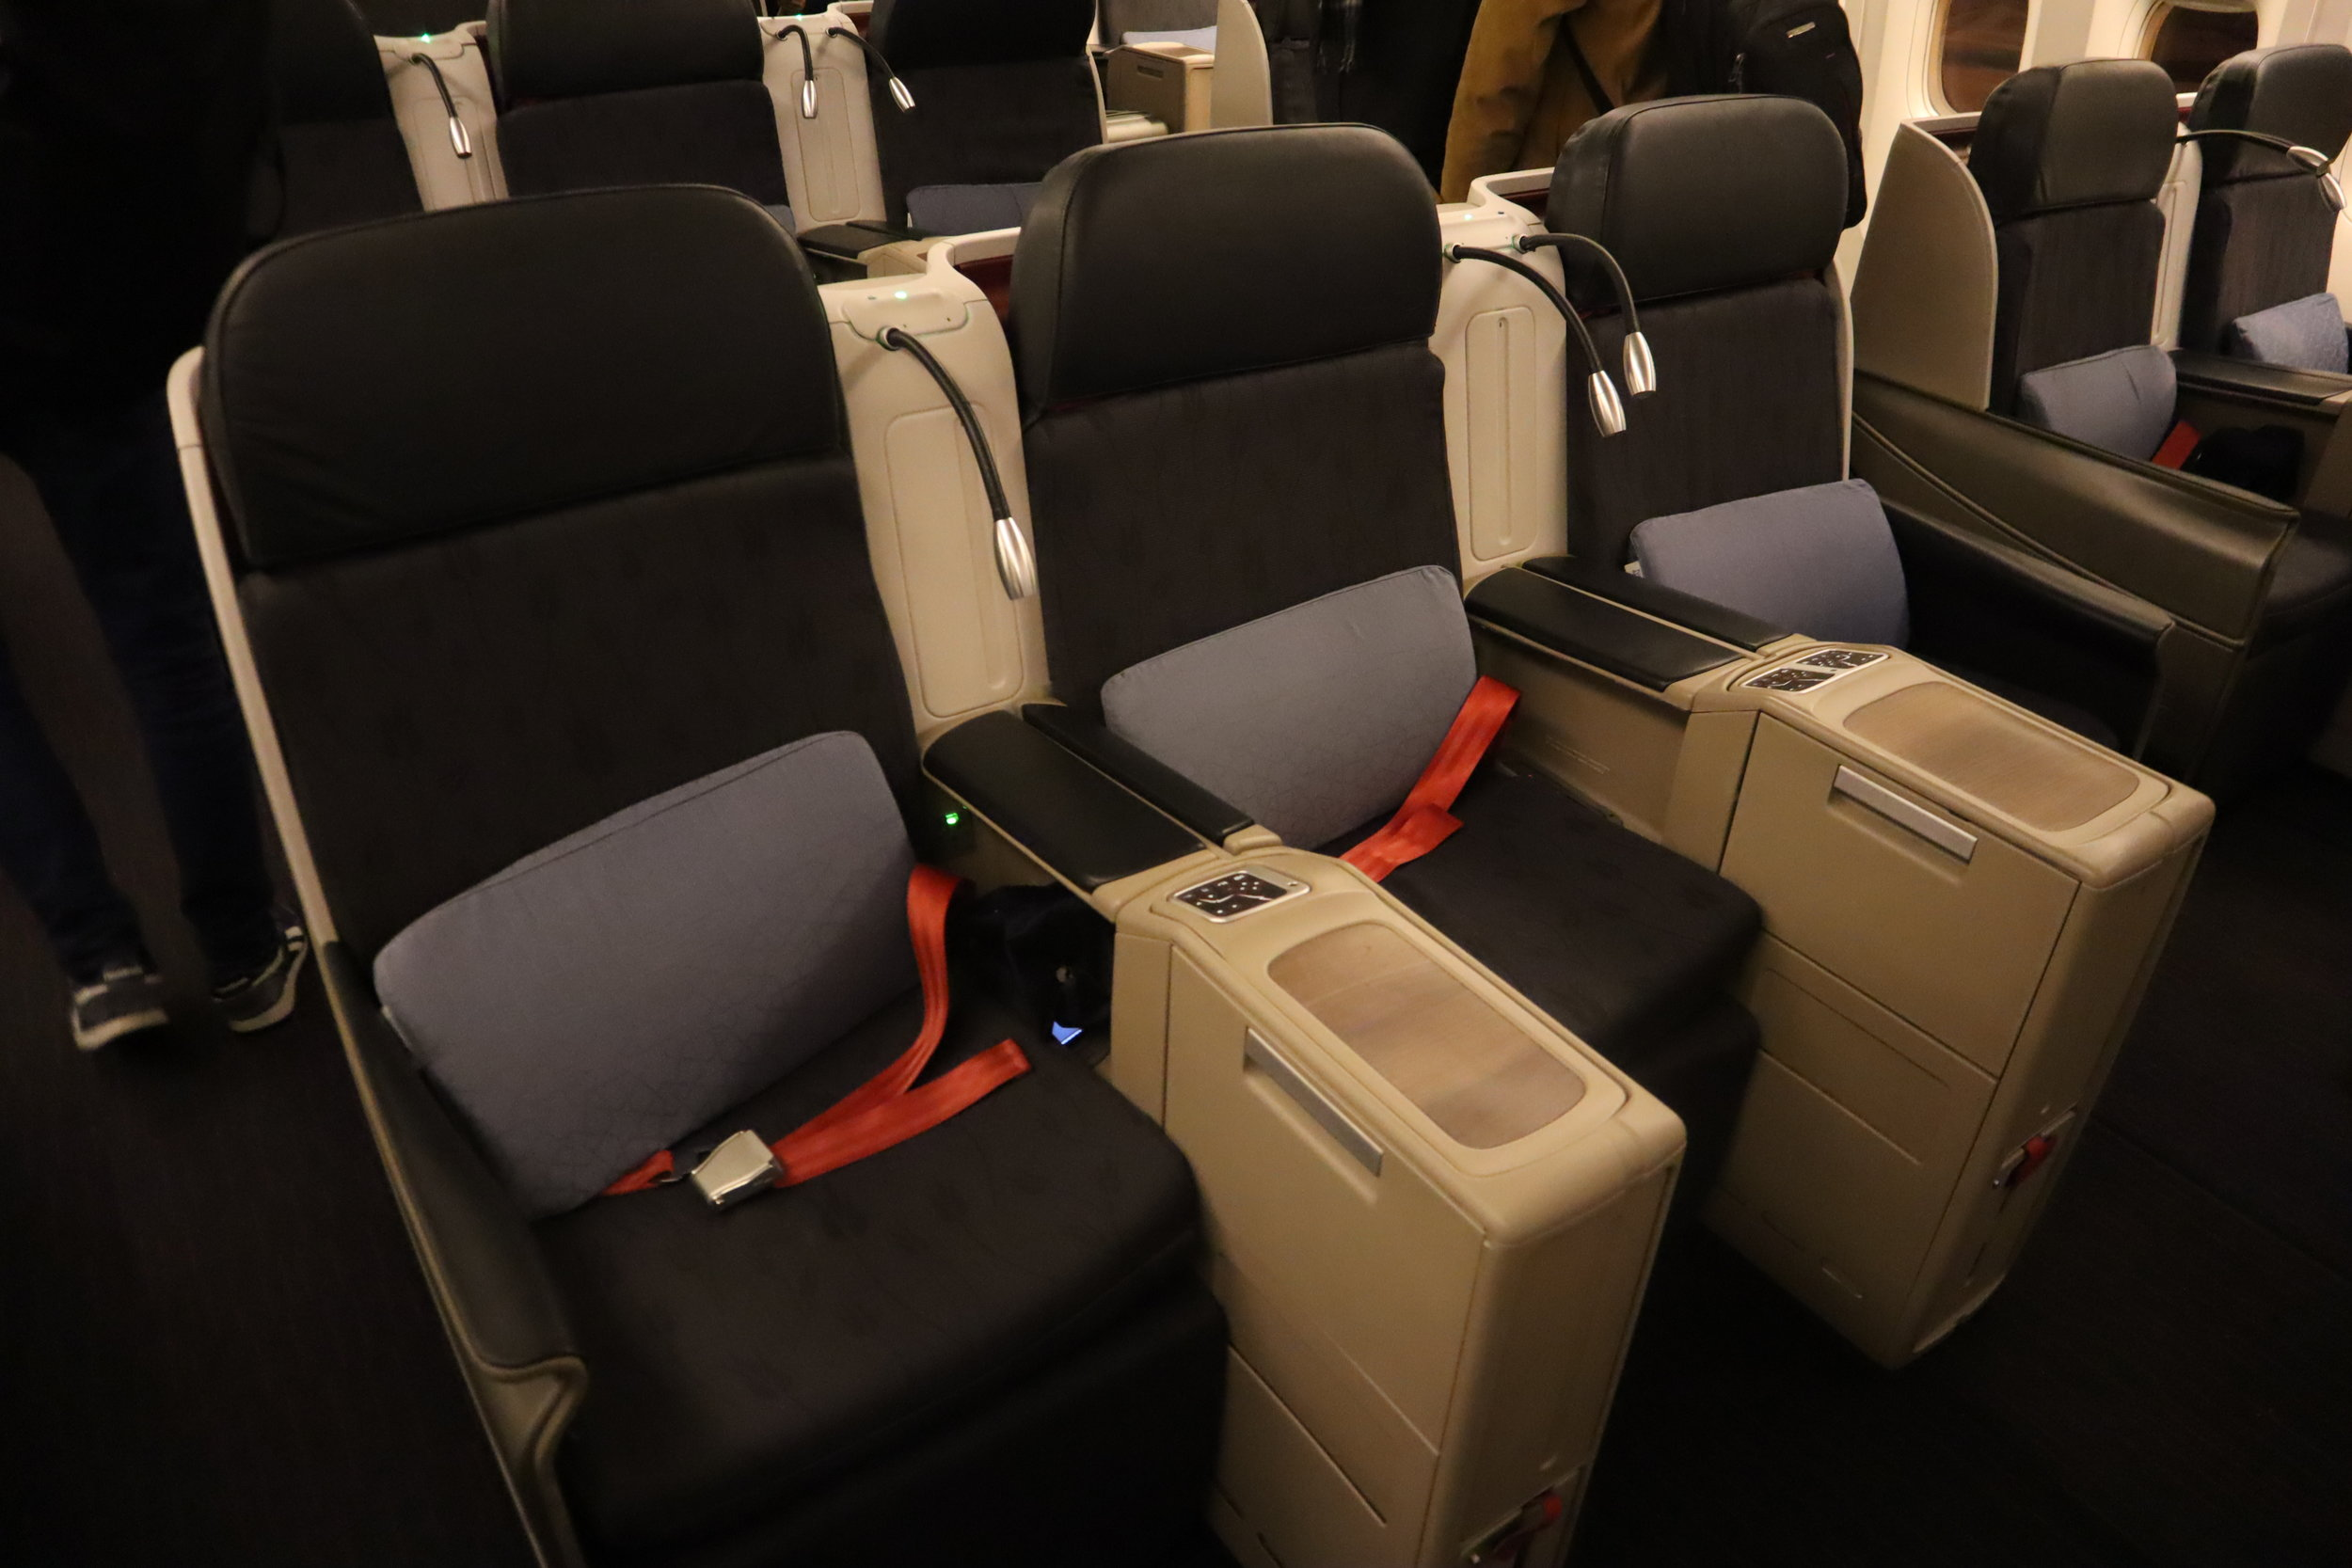 Turkish Airlines 777 business class – Three-across seating